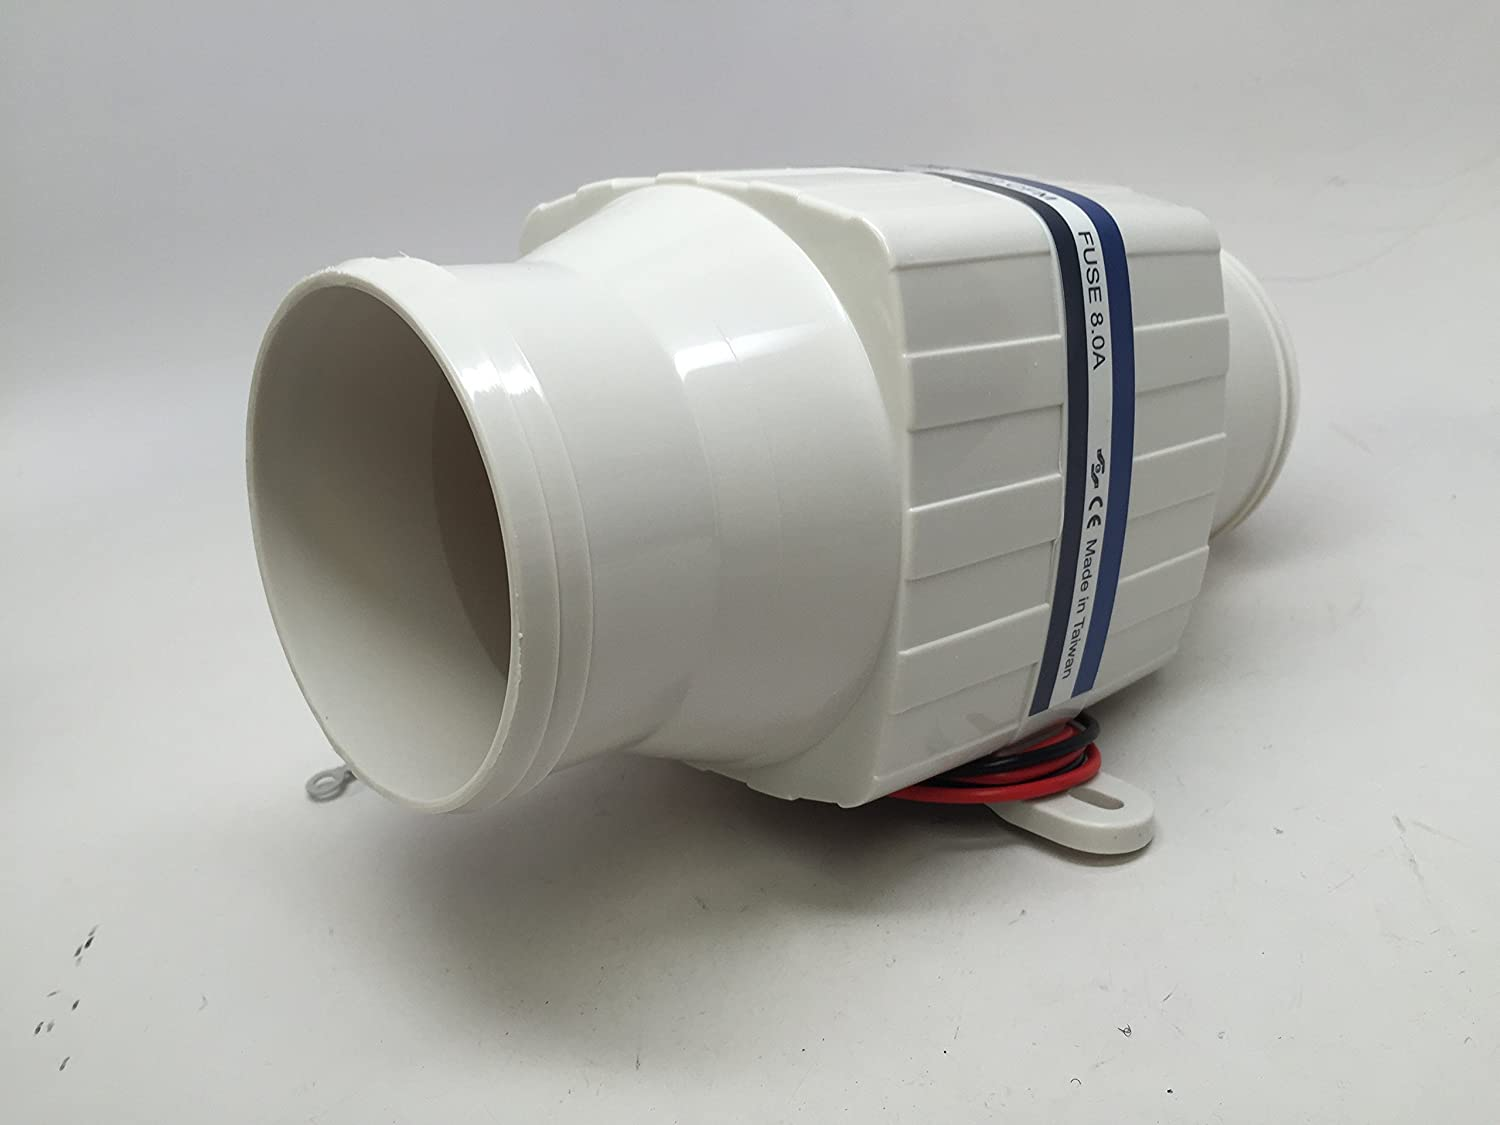 Marine HIGH Performance White in LINE Bilge Blower 12V 122CFM 4.5AMP 8A Fuse PACTRADE MARINE